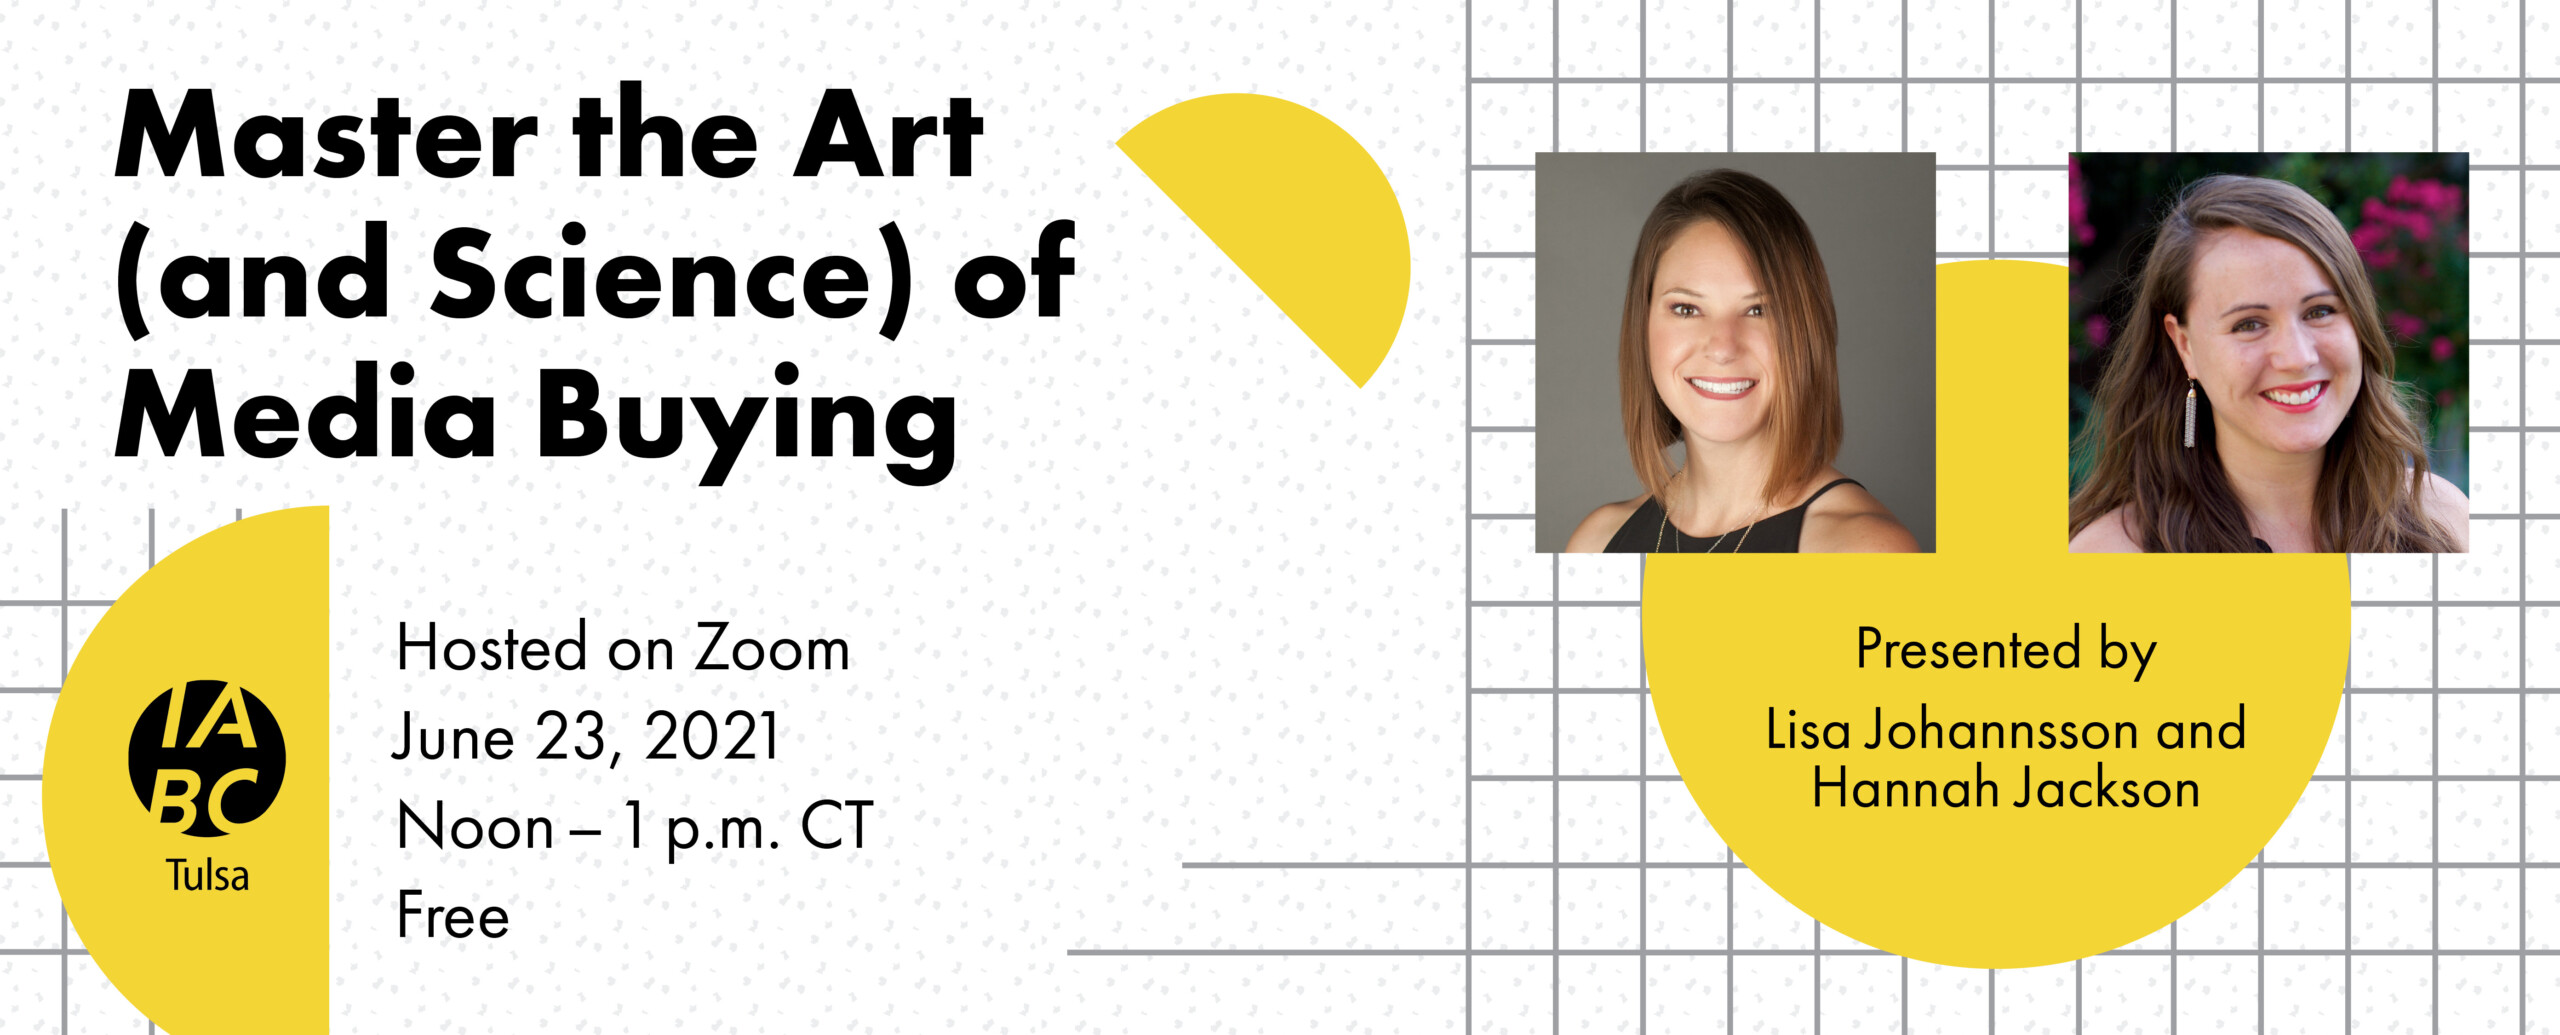 IABC PD Event Master the Art of Media Buying